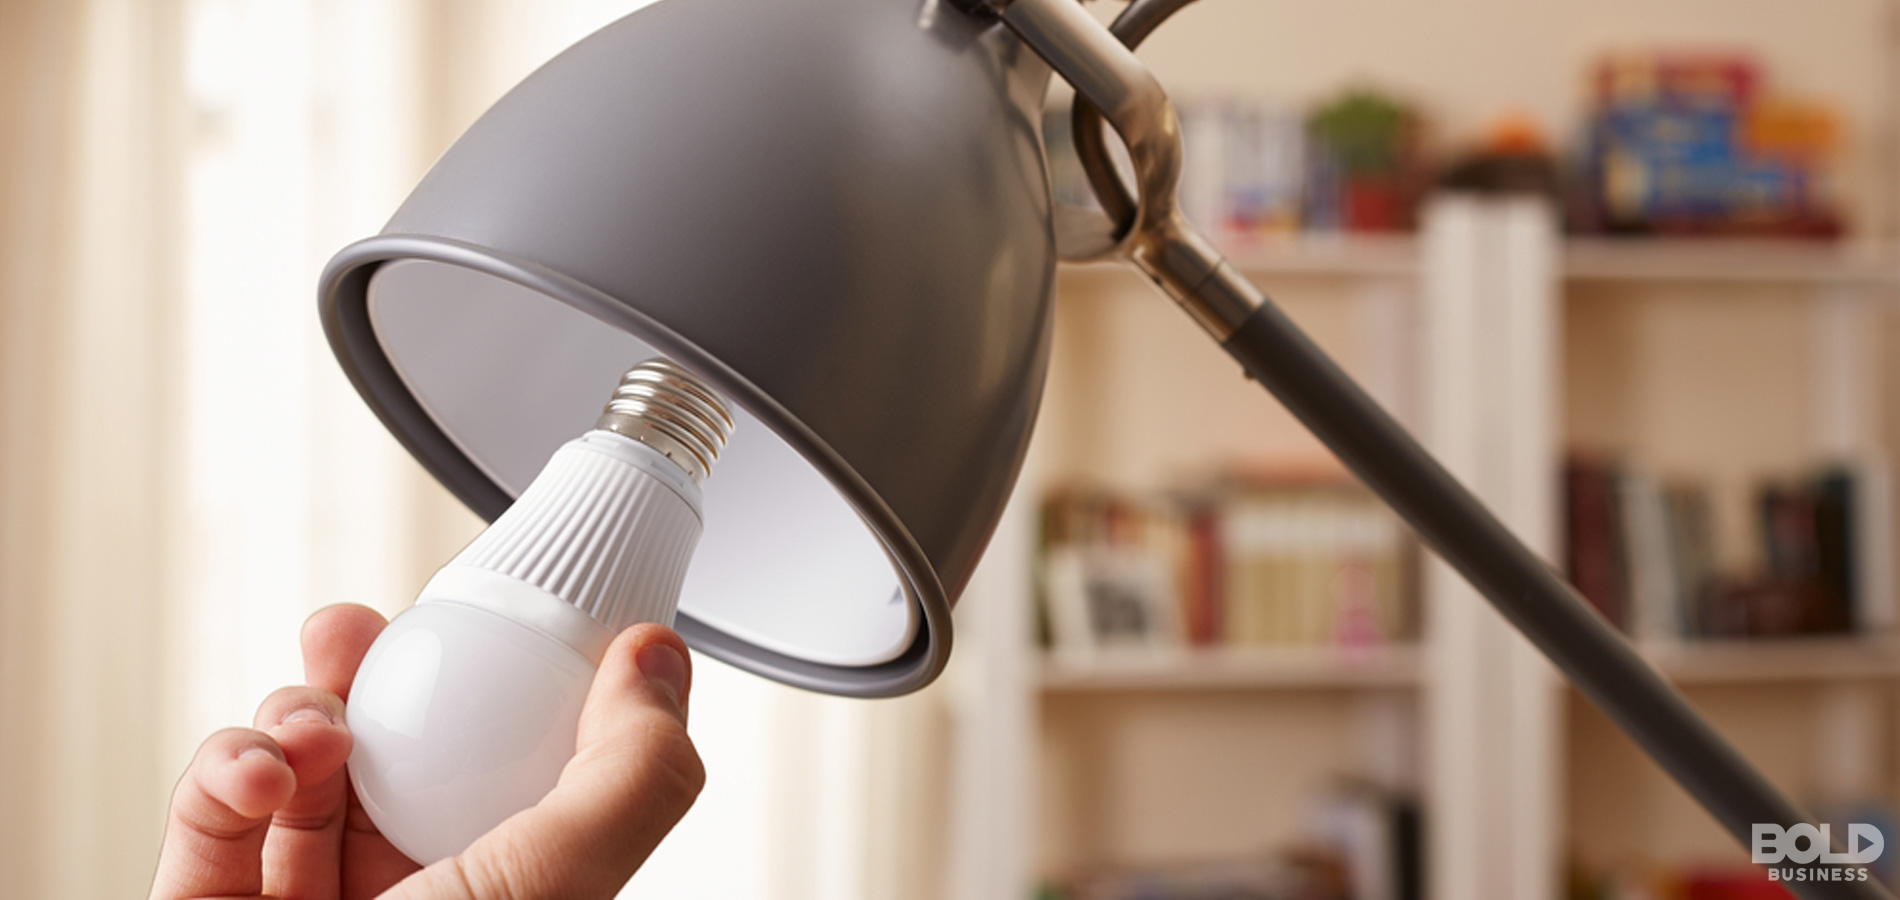 a photo of a lamp shade with its light bulb being removed by a hand in connection to the topic of LED light pollution